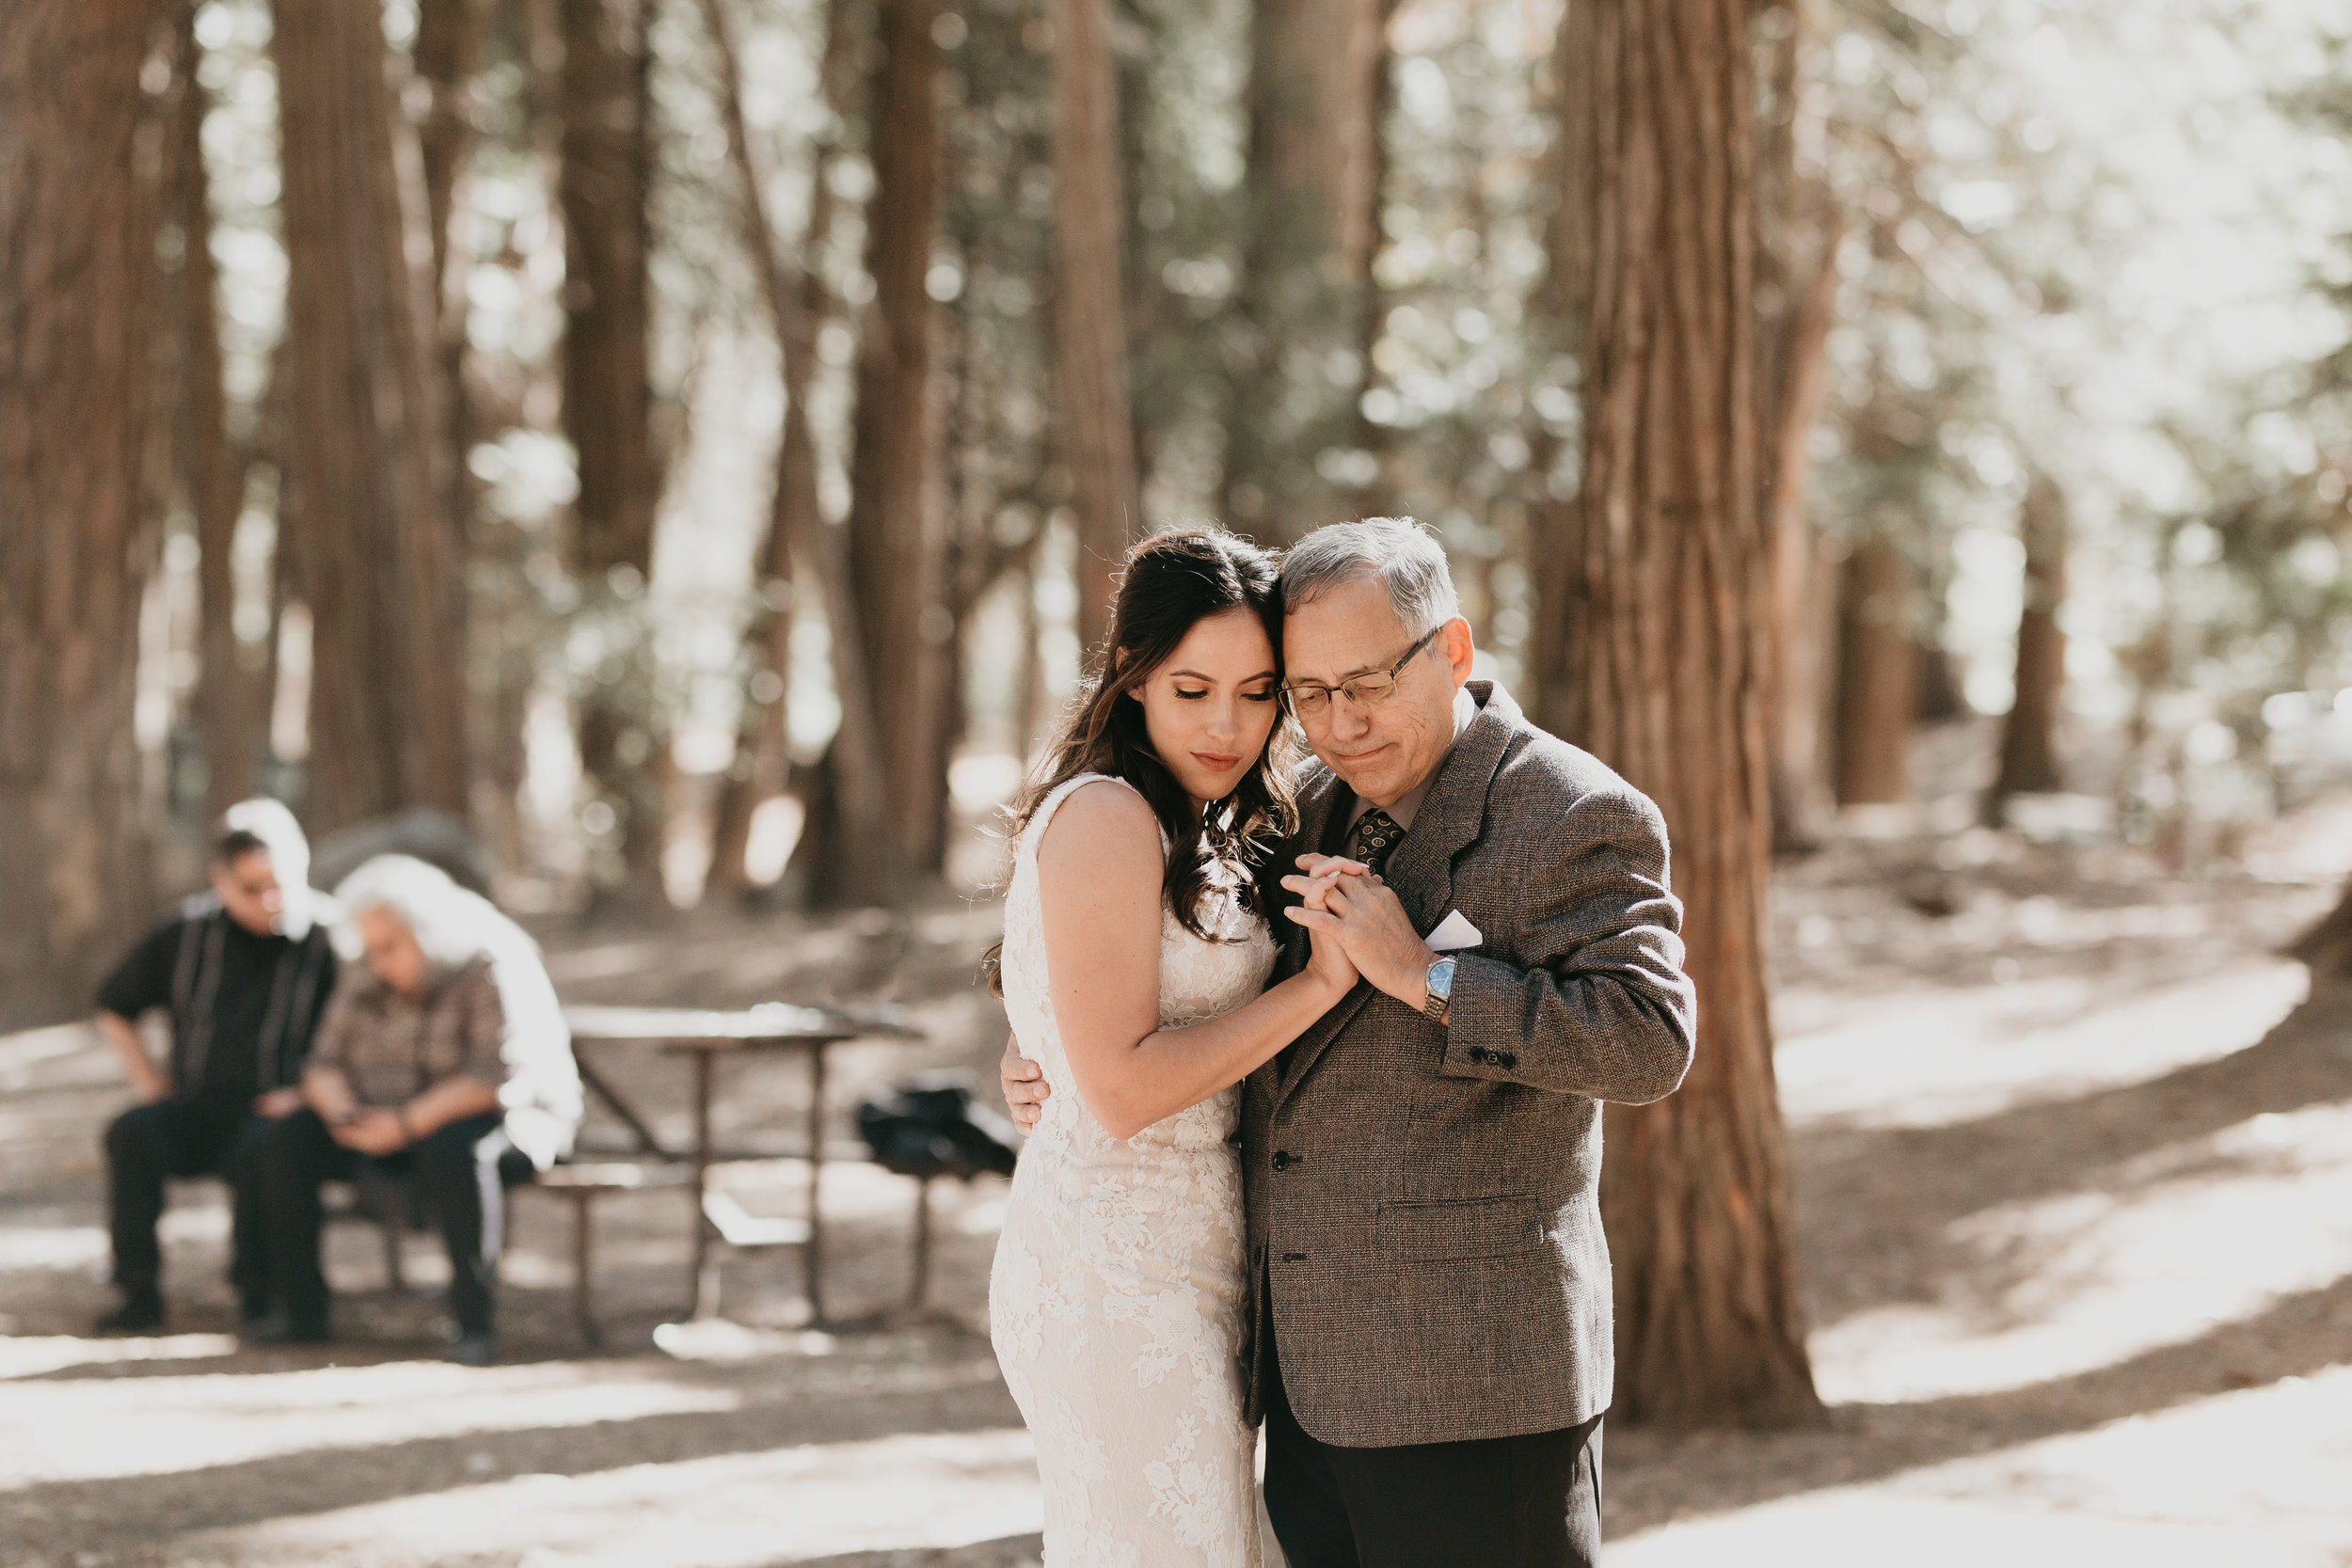 nicole-daacke-photography-intimate-elopement-wedding-yosemite-national-park-california-taft-point-sunset-photos-yosemite-valley-tunnel-view-first-look-sunrise-golden-granite-hiking-adventure-wedding-adventurous-elopement-photographer-86.jpg